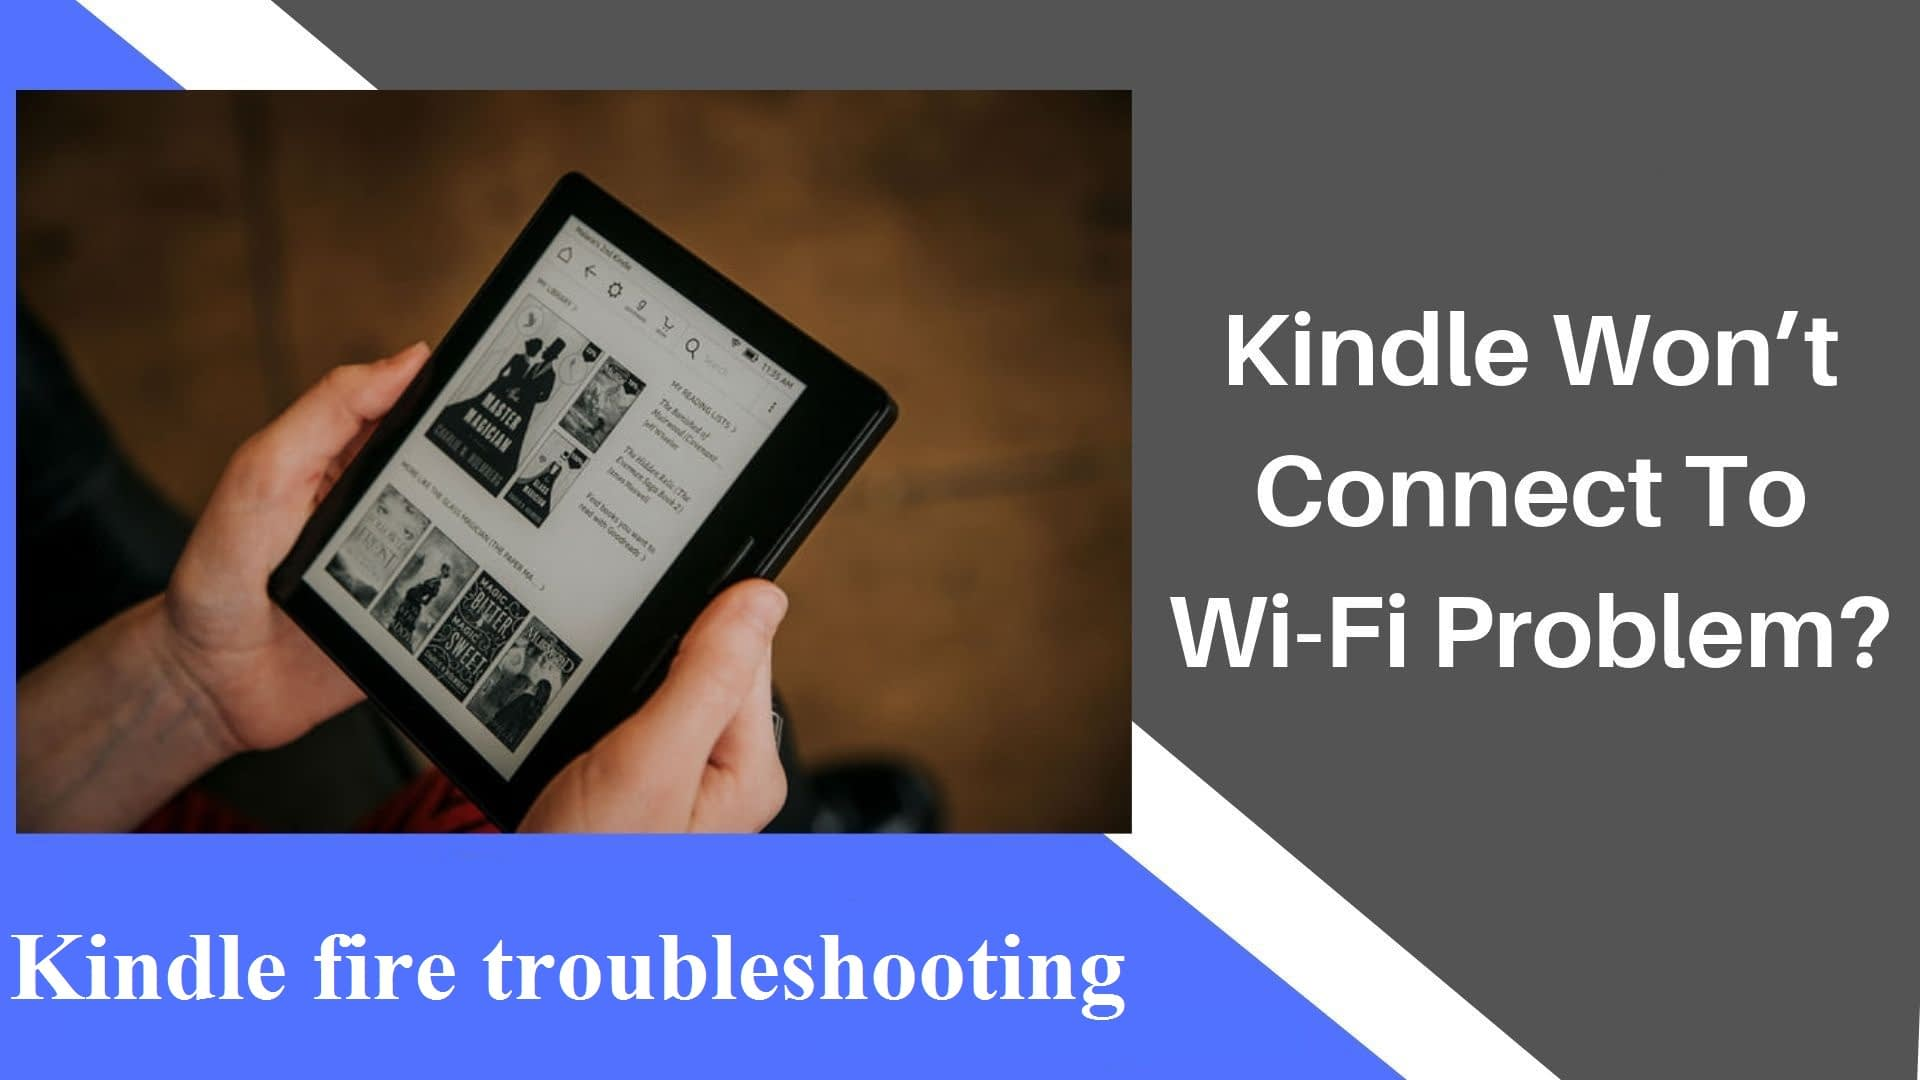 Kindle fire troubleshooting